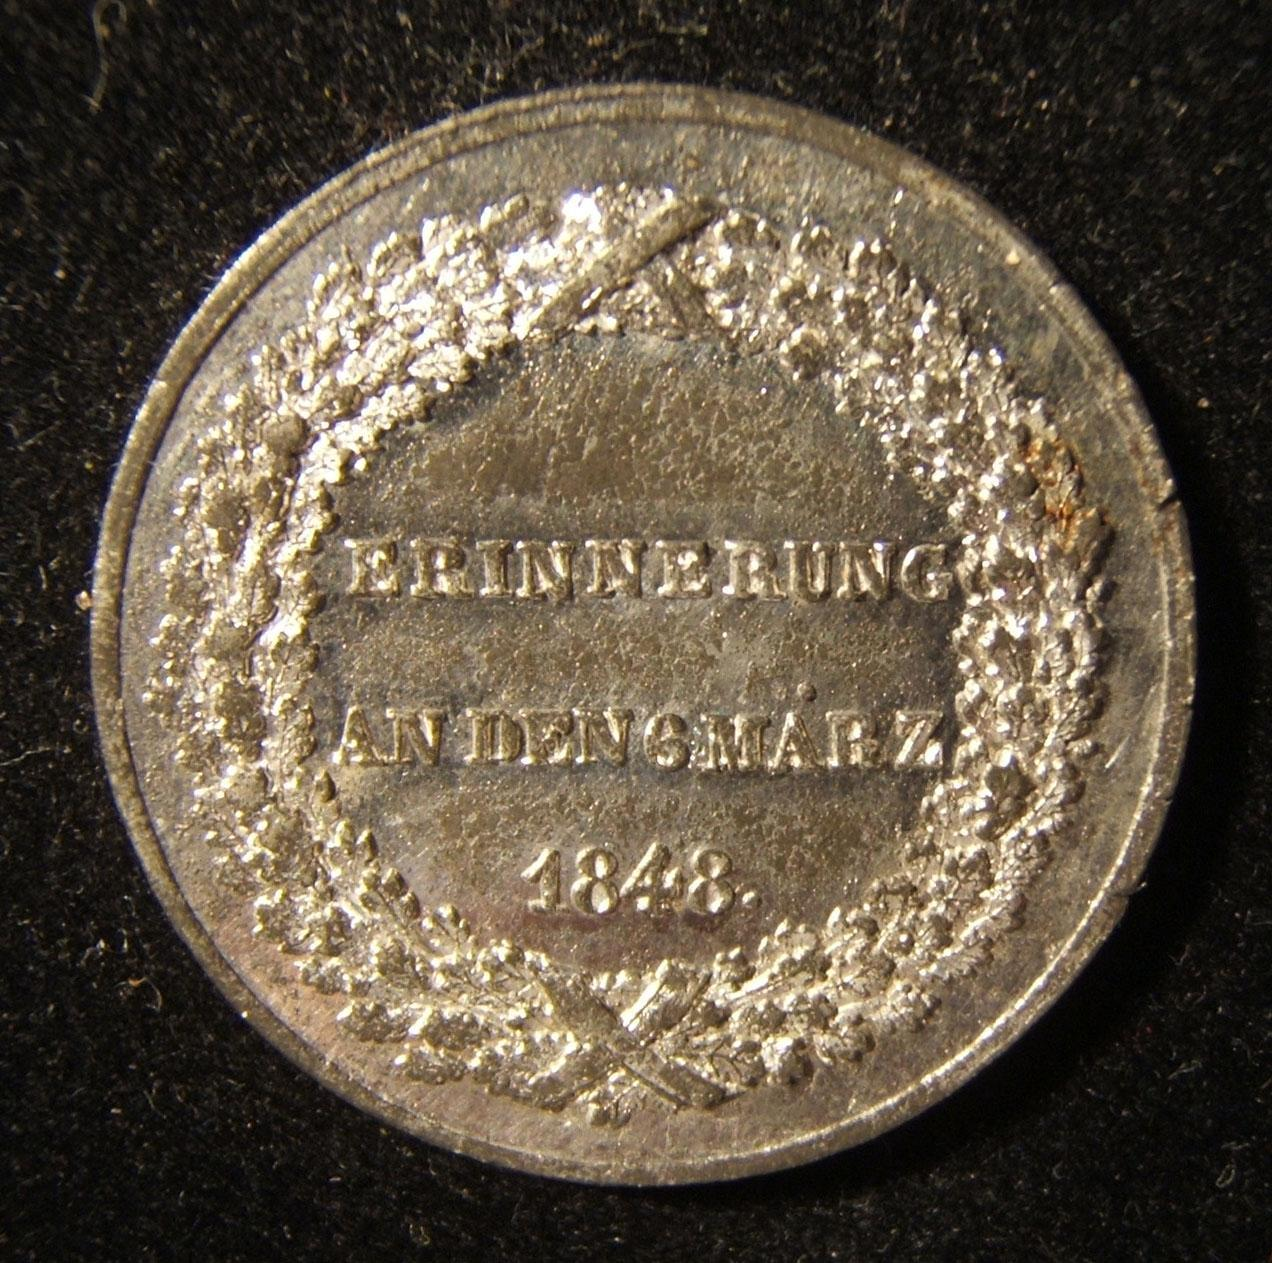 Germany > Bavaria: Souvenir token of the March 1848 revolution, c. 1849; silver-finished tin(?); not maker-marked; size: 30mm; weight: 8.55g; thickness: 2.25mm. Obverse: 3-lined